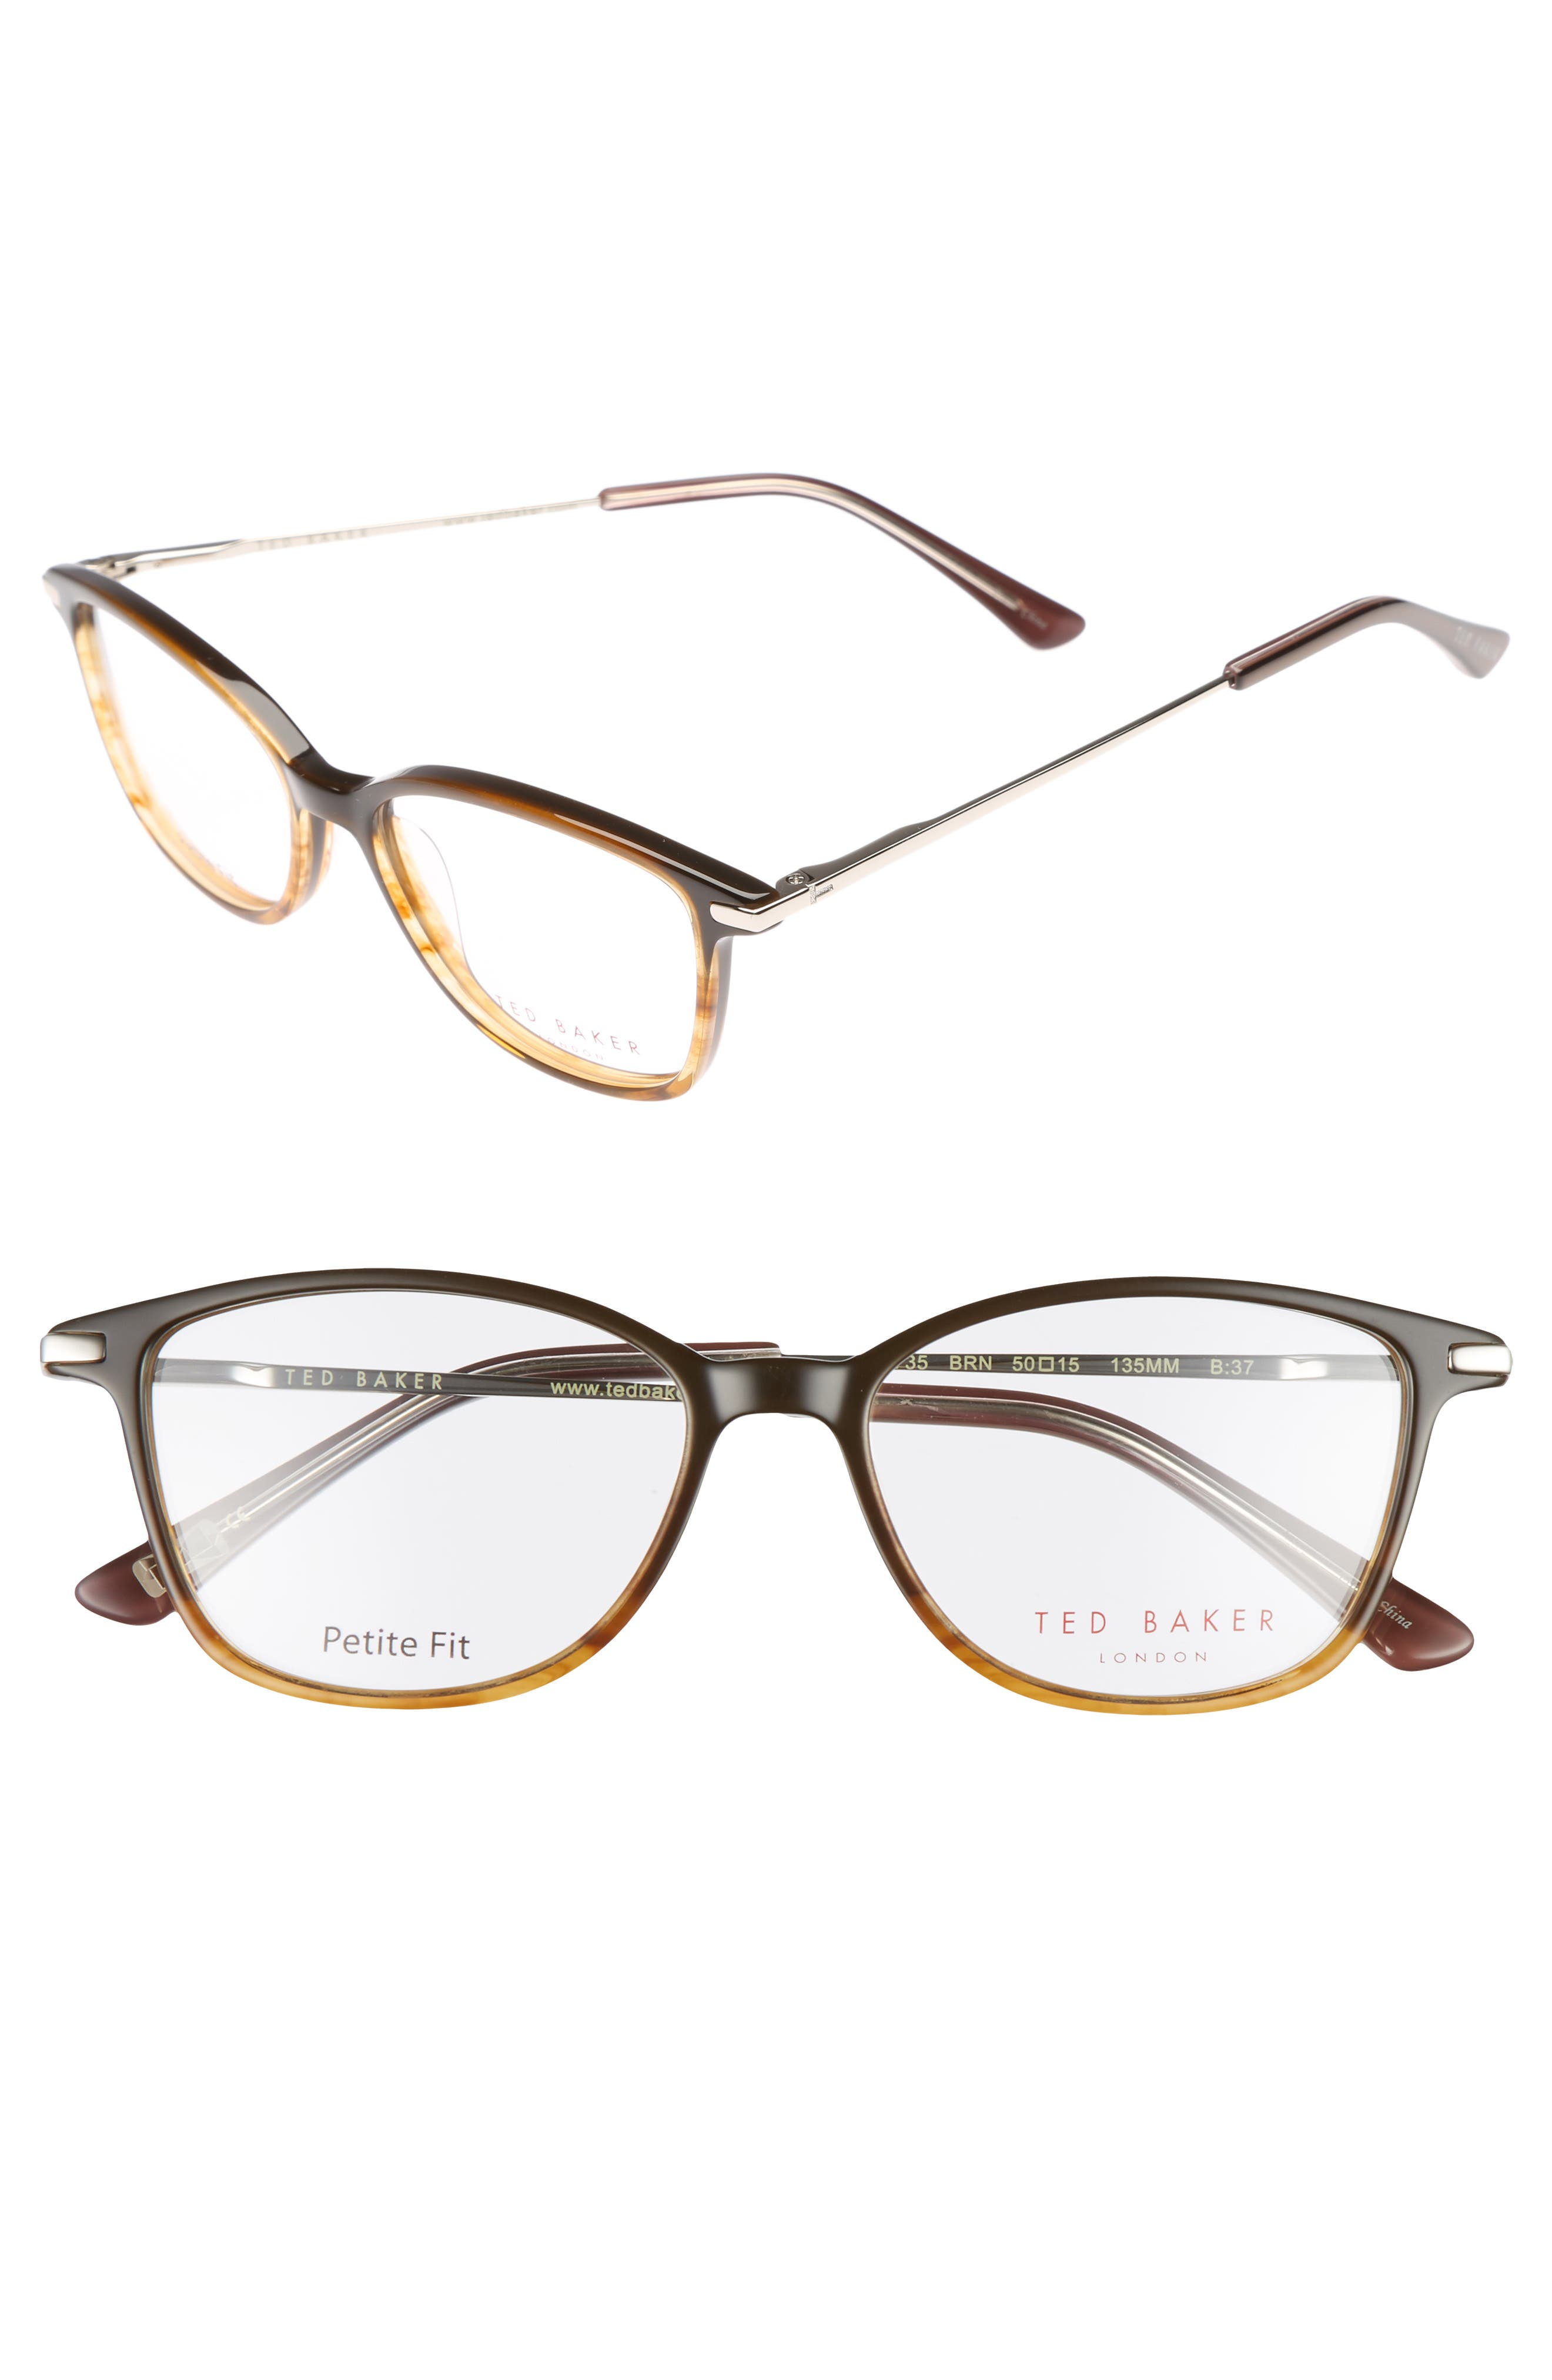 Ted Baker London Petite Fit 50mm Optical Glasses